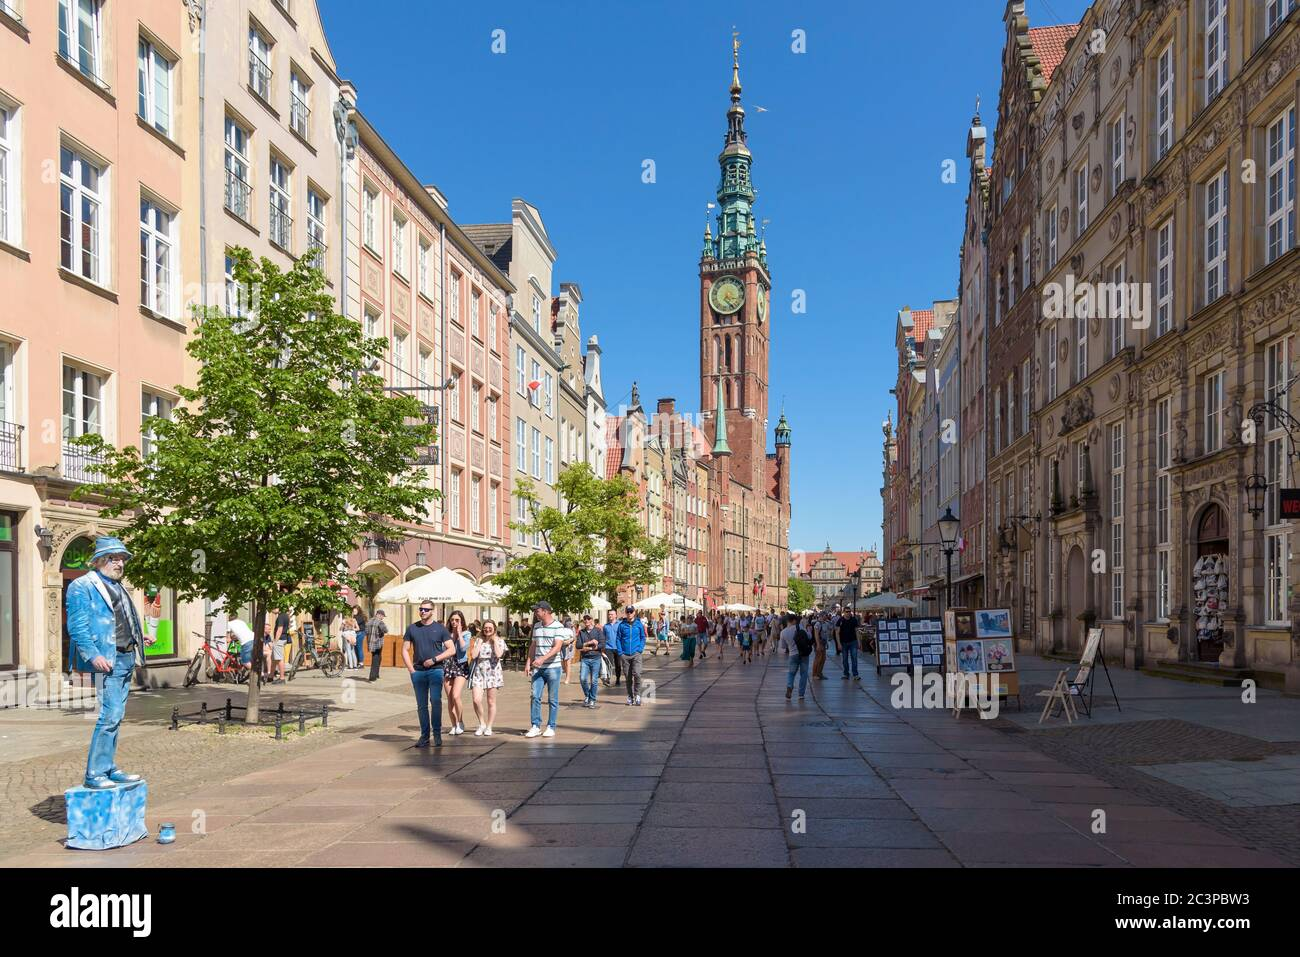 Gdansk, Poland - June 14, 2020: Crowded famous main street of the old town in Gdansk at sunny day Stock Photo